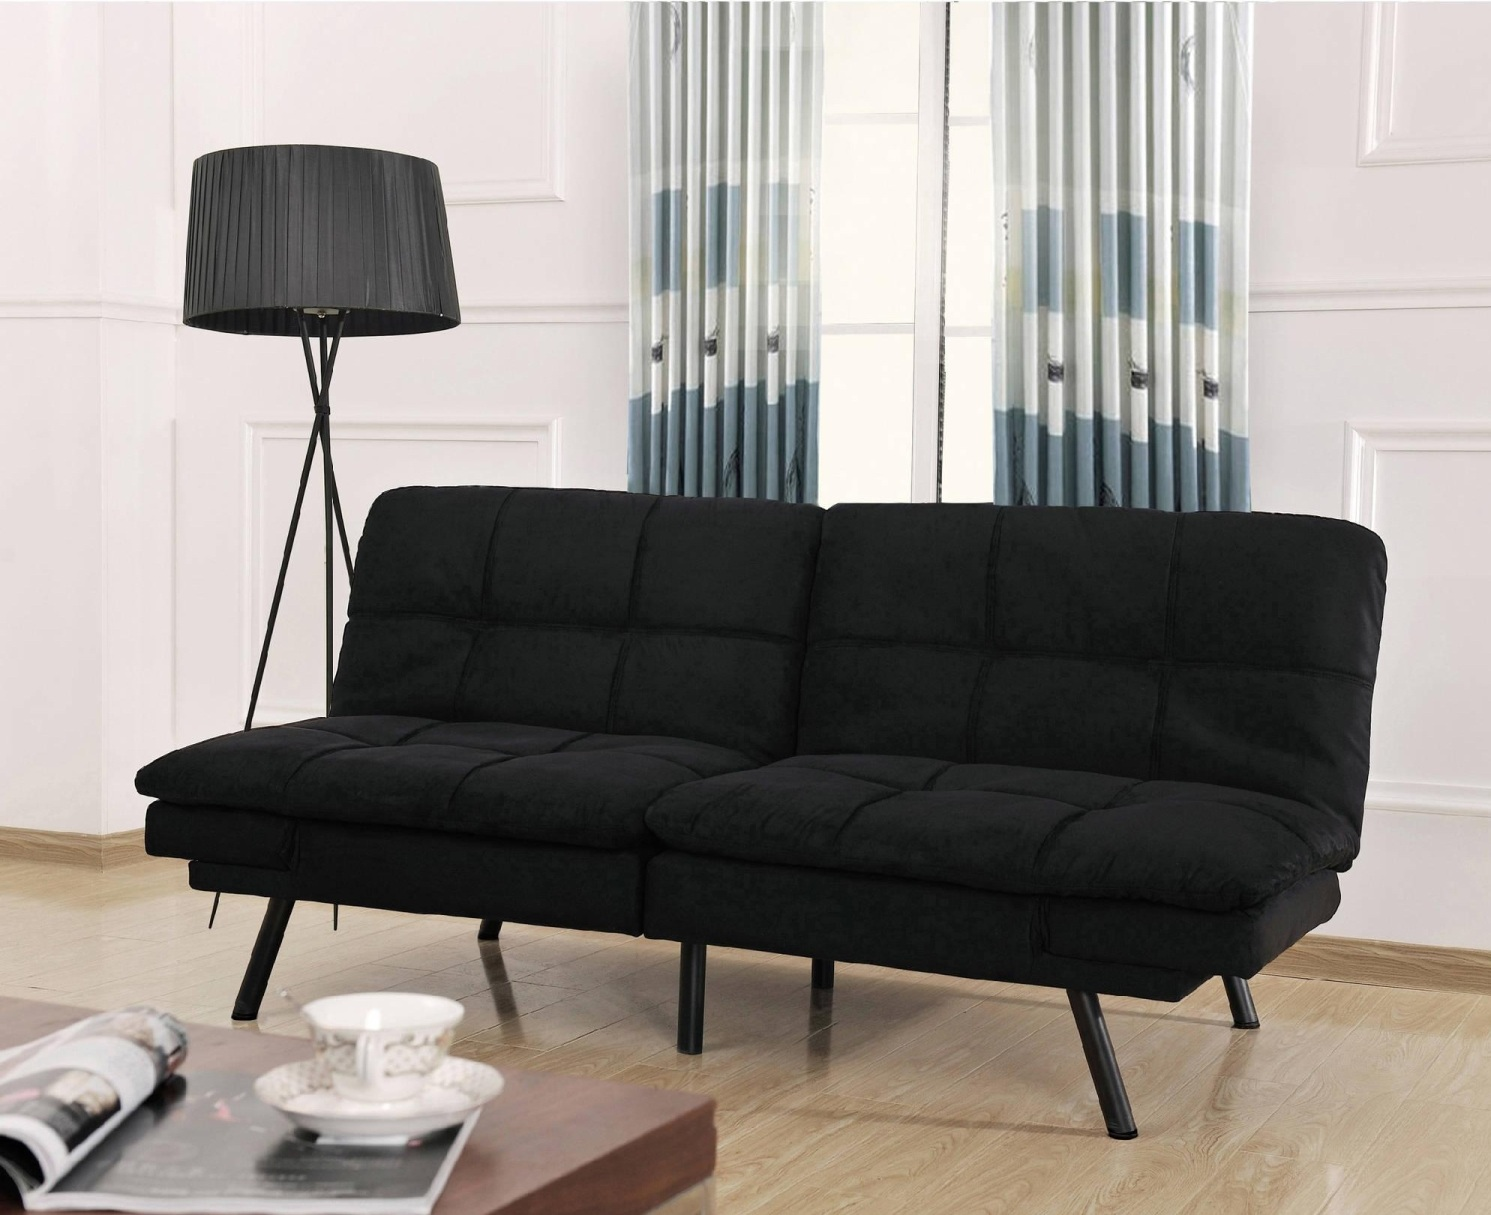 2016 Narrow Sofa Beds For The Best Use Of Tight Space 16 2016 Narrow Sofa Beds For The Best